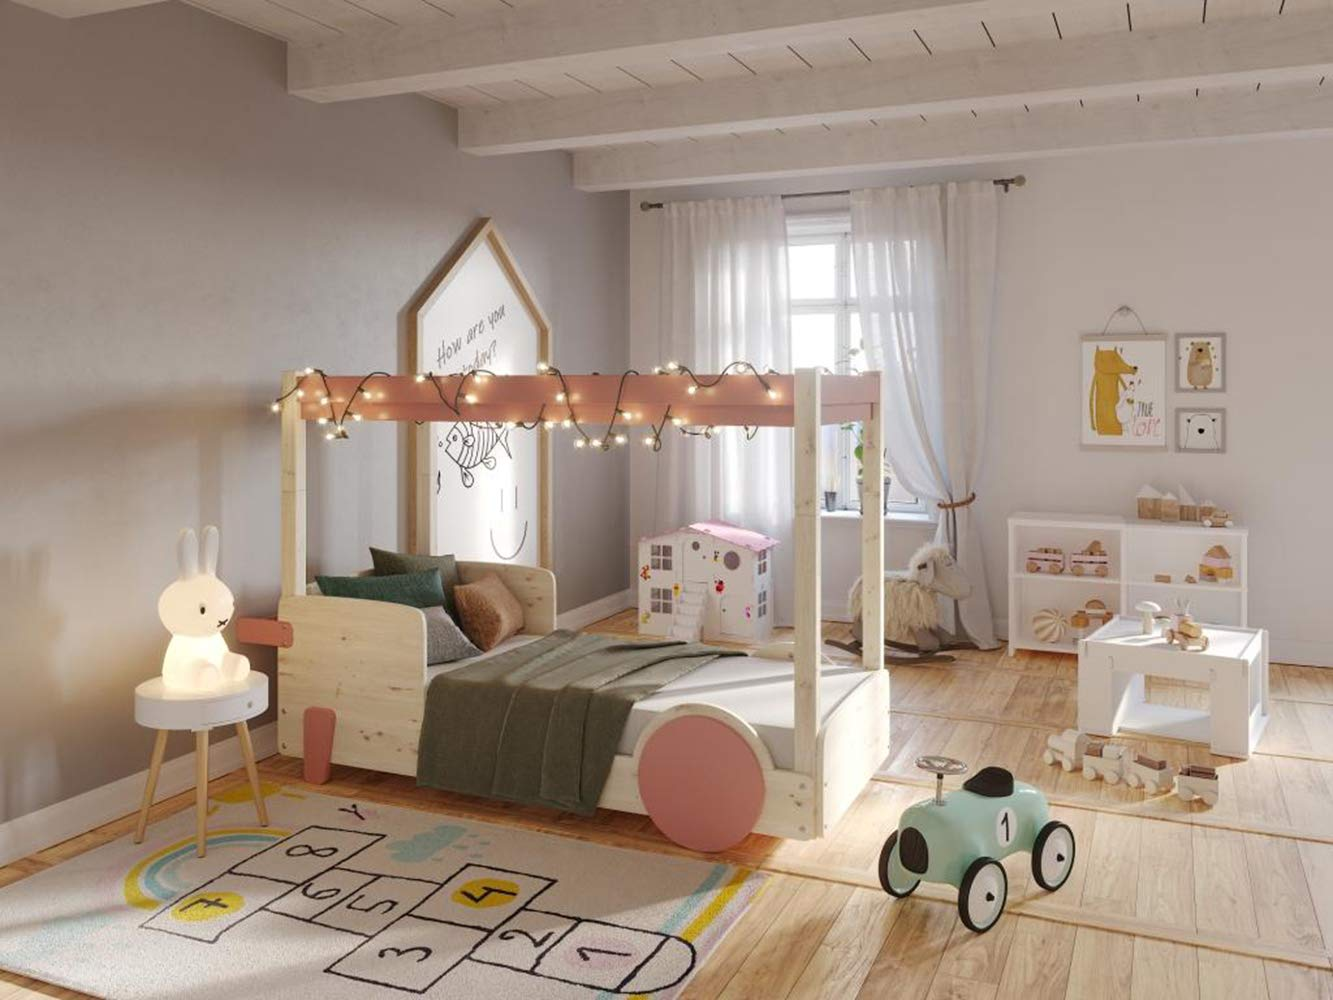 Hyggelia House wooden bed Merkury for children, for teenagers, MDF accessories, furniture for the bedroom (80 x 180cm, Painted (Choose Color)) Hyggelia Additional kits to convert into a bunk bed, or to receive the pul-out bed Colour: Natural wood or Choose a color from the color palette (photo in the gallery) It is available in natural varnish and 27 water based lacquers. 5